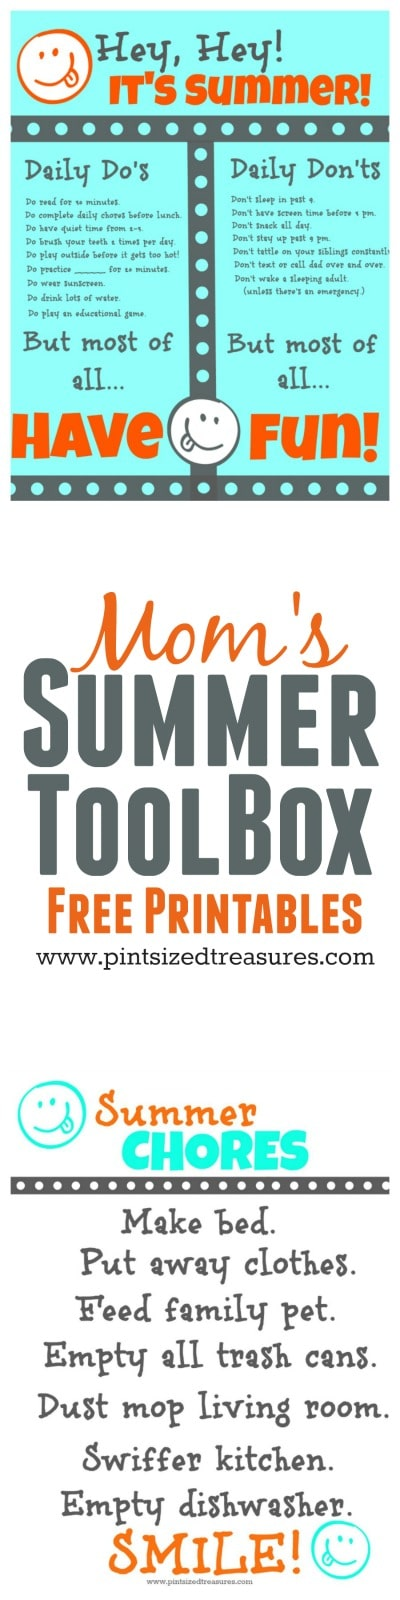 mom's summer toolbox